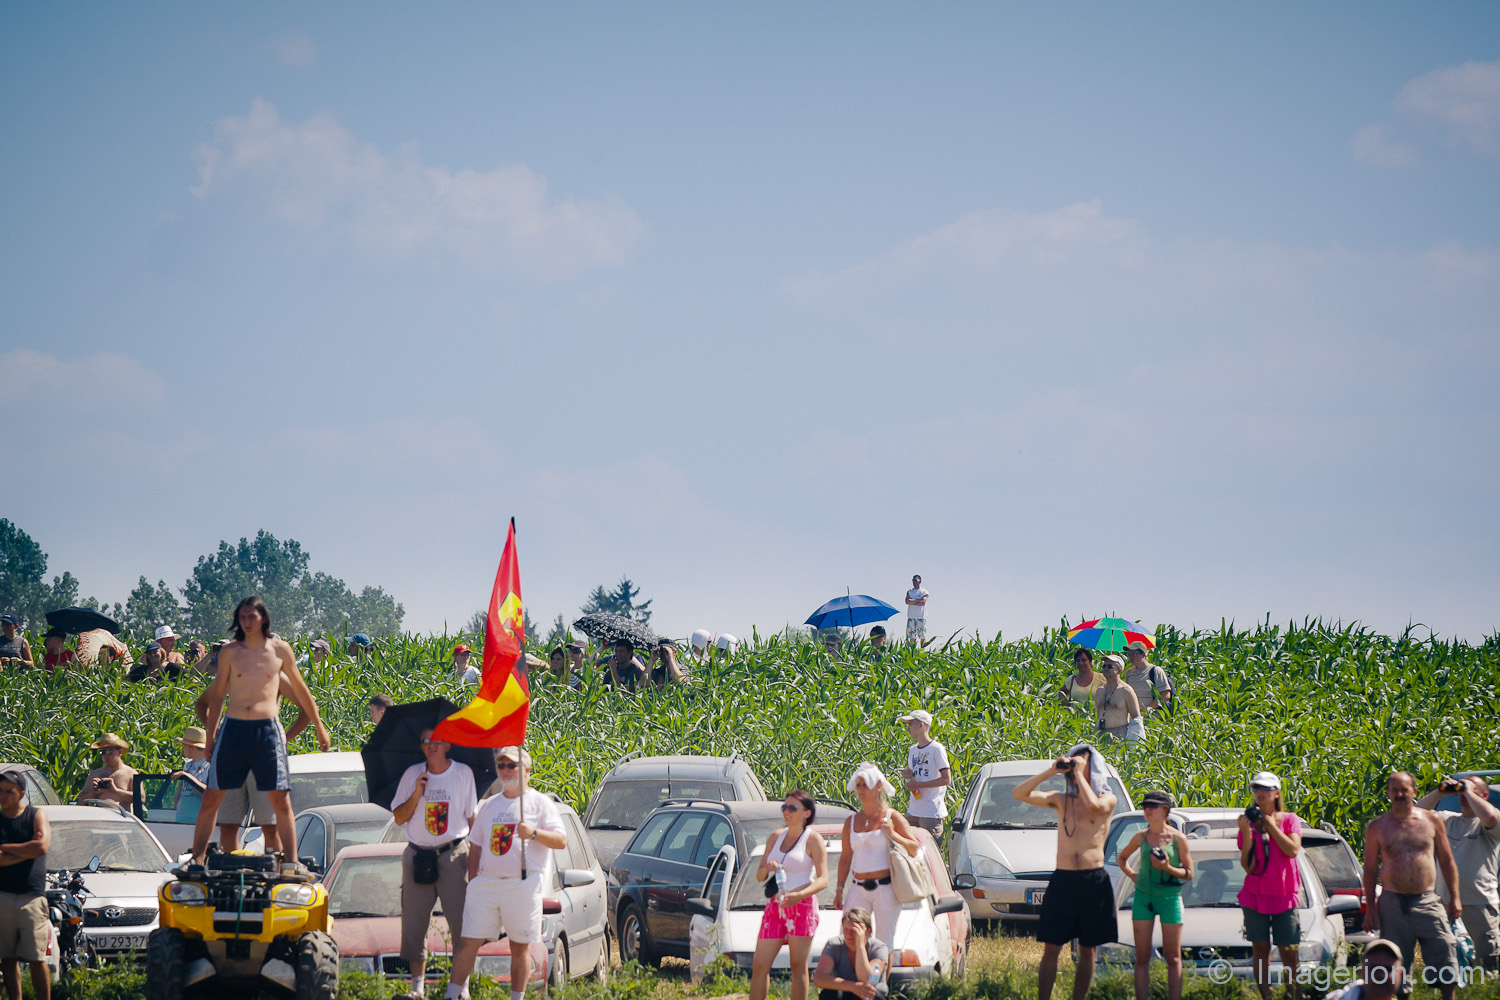 Spectators sitting in a corn field, with umbrellas, around their cars. Terrible heat